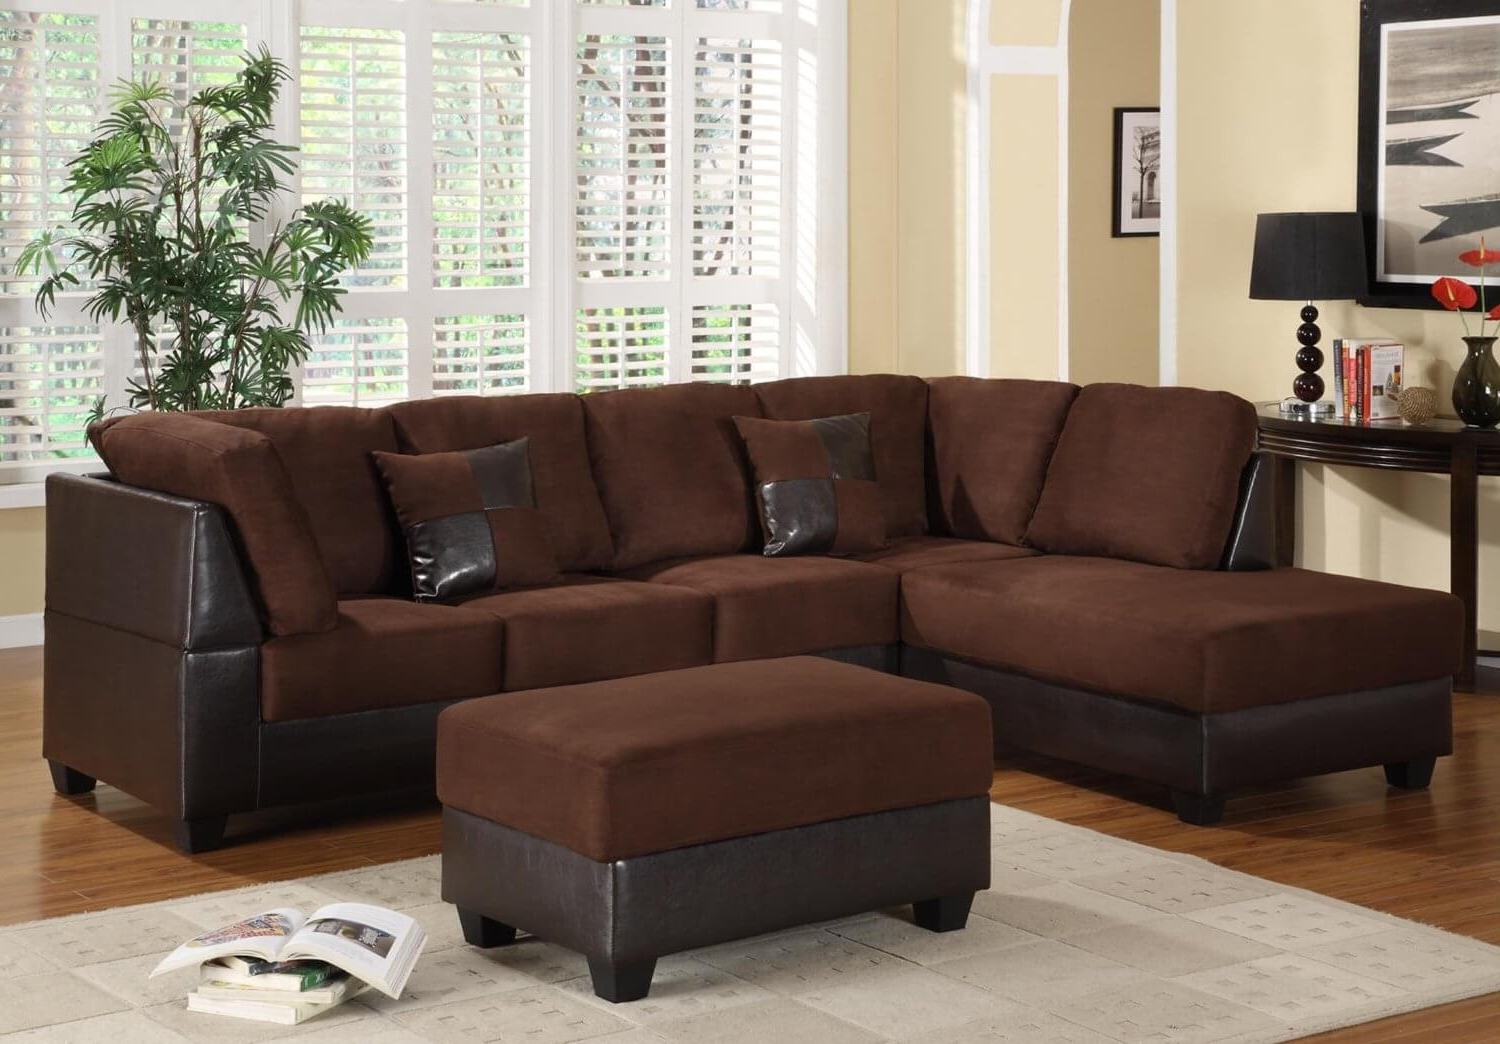 Sectional Sofas Under 200 With Regard To Newest 40 Cheap Sectional Sofas Under $500 For  (View 13 of 15)